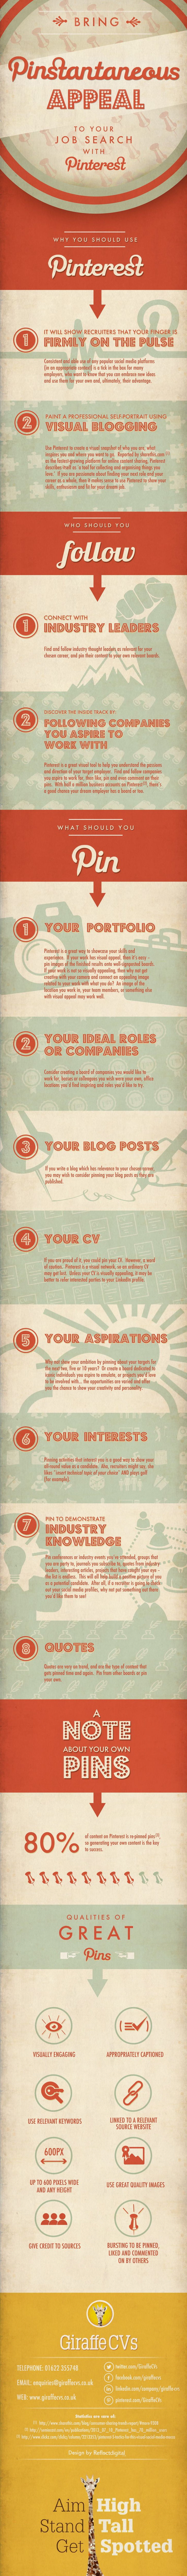 best ideas about cv writing service professional infographic bring pinstantaneous appeal to your job search by cv